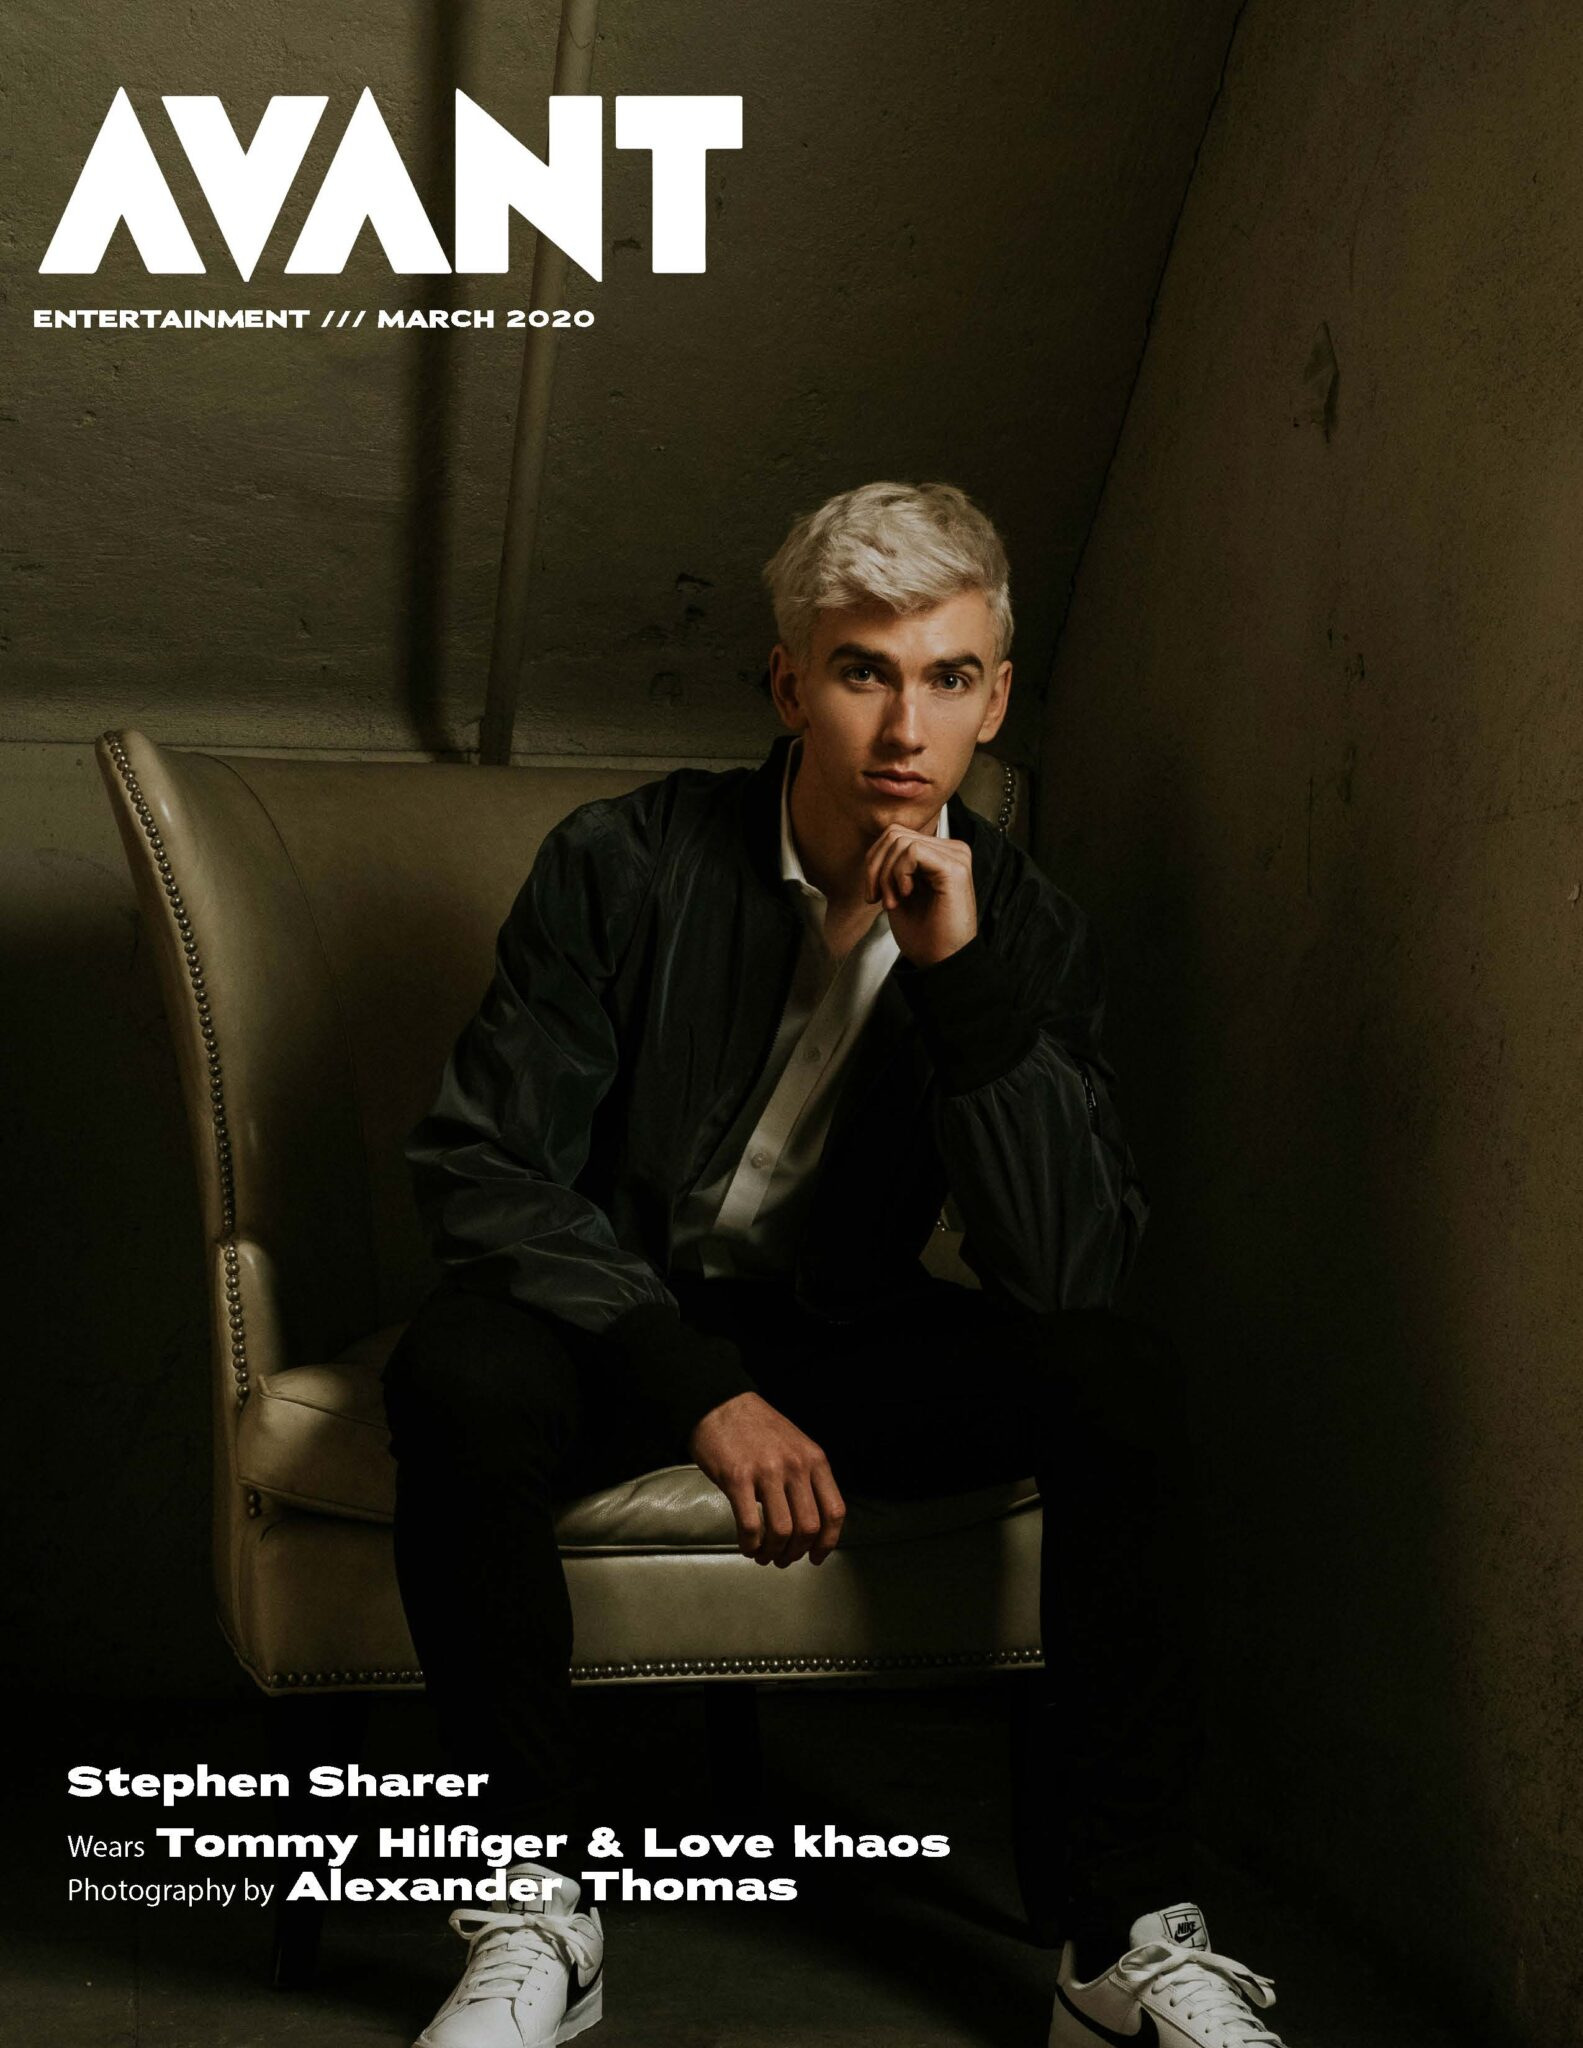 Stephen Sharer (Avante Magazine)